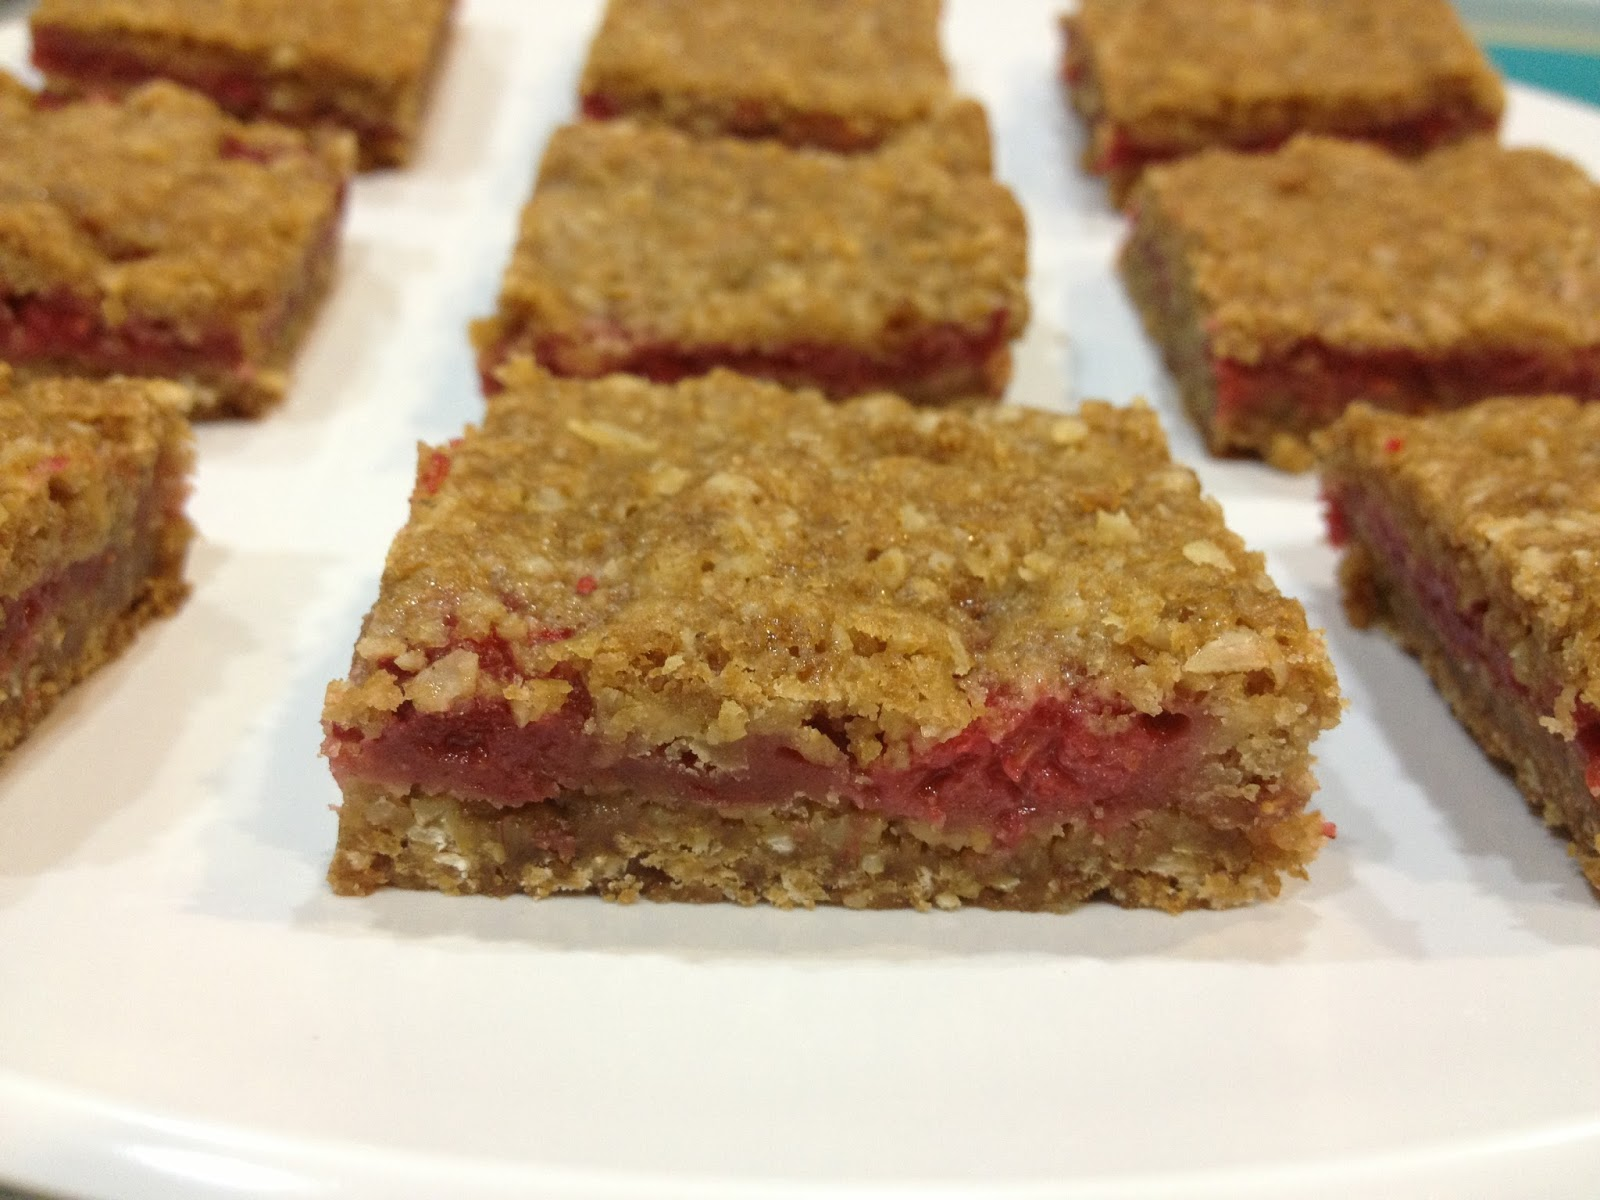 The Nerdy Chef: Raspberry Breakfast Bars